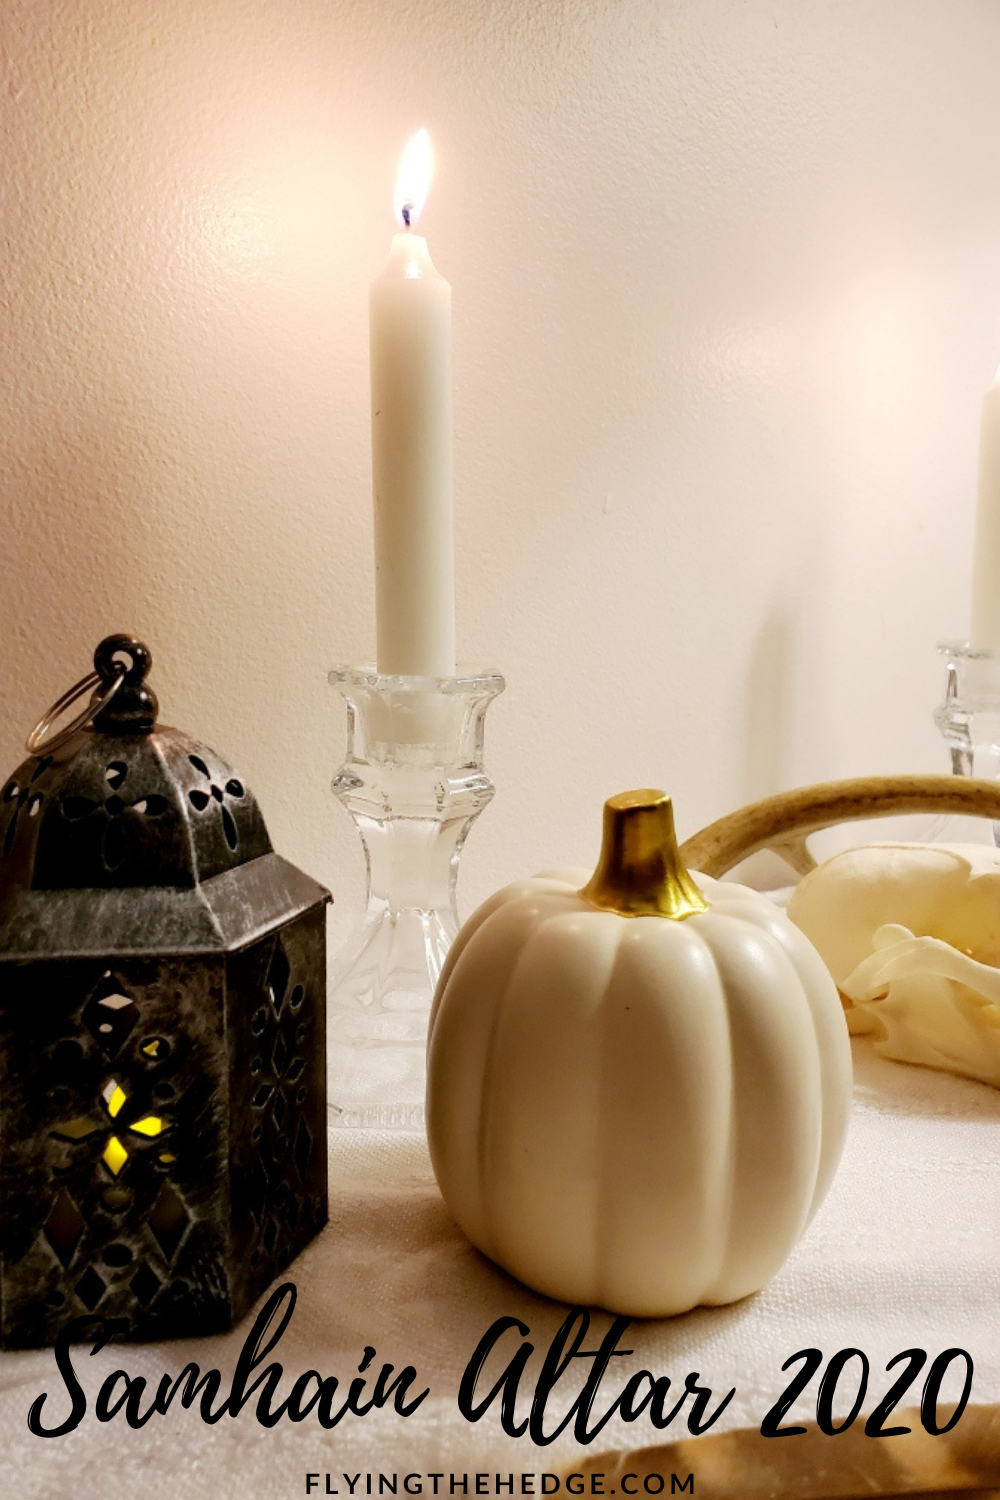 altar, sabbat, Samhain, Halloween, witchcraft, witchy, hedgewitch, pagan, neopagan, wiccan, wicca